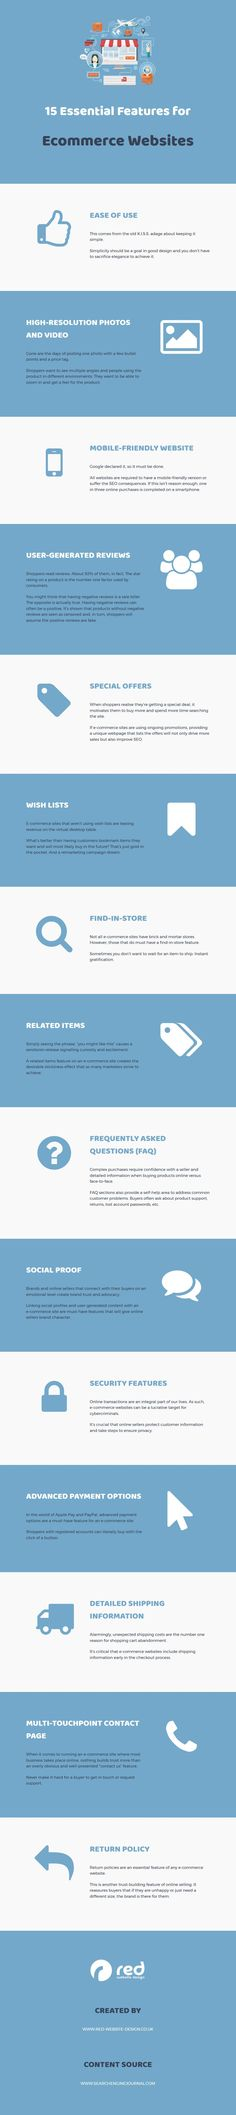 15 Essential Features for eCommerce Websites [Infographic]   Social Media Today